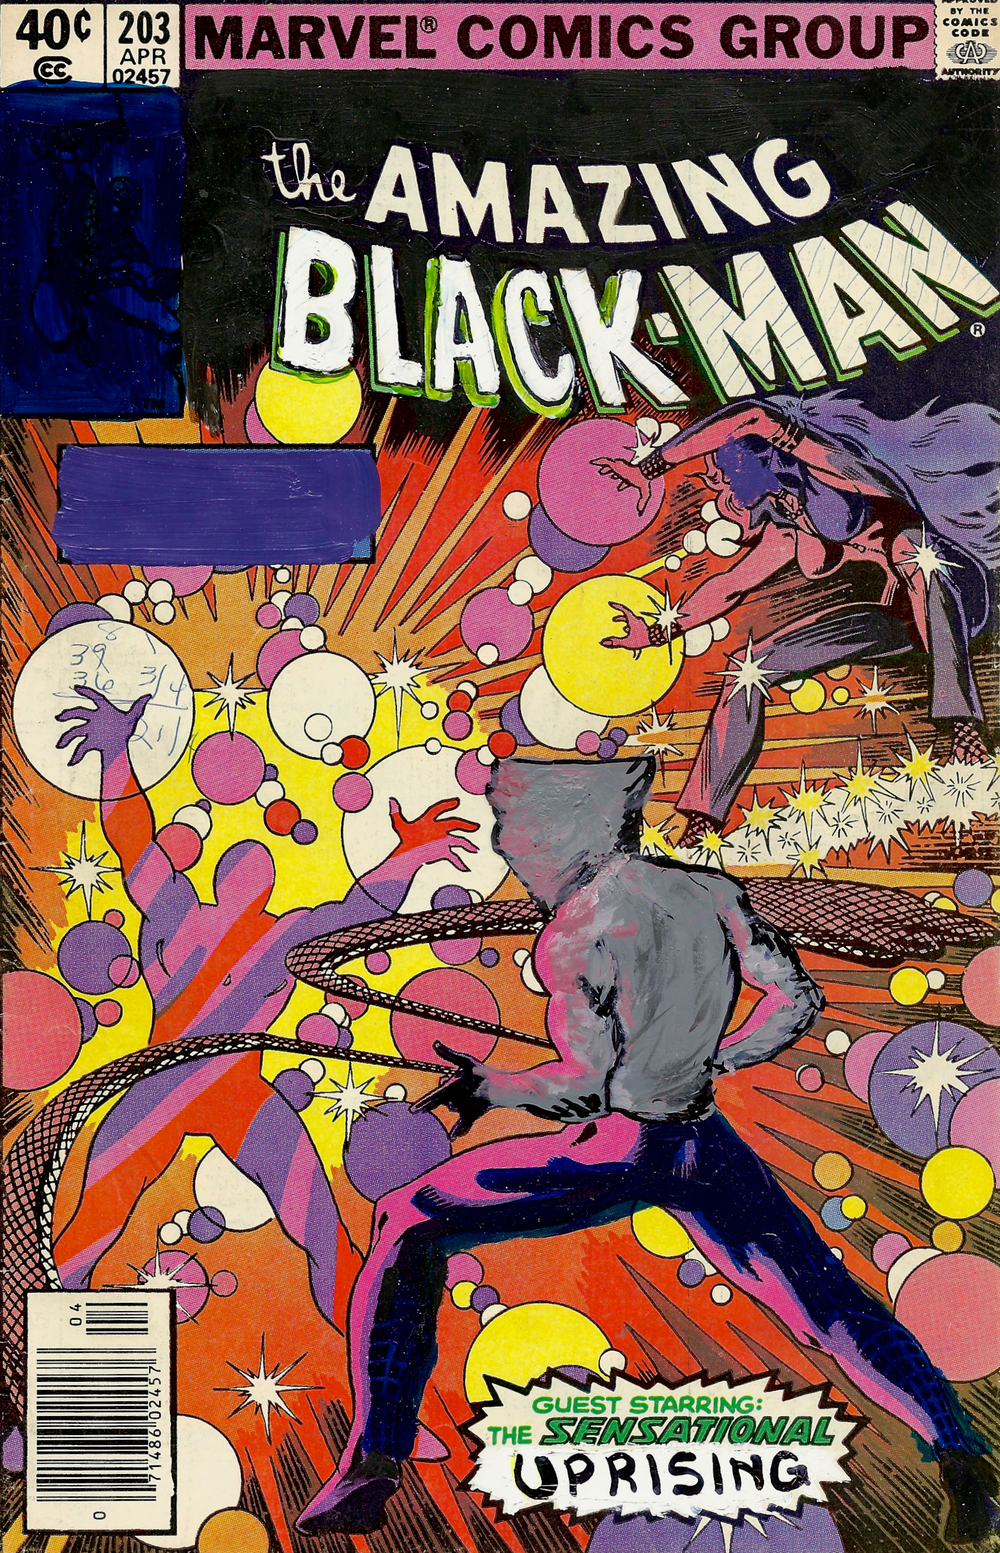 The Amazing Black-Man #203